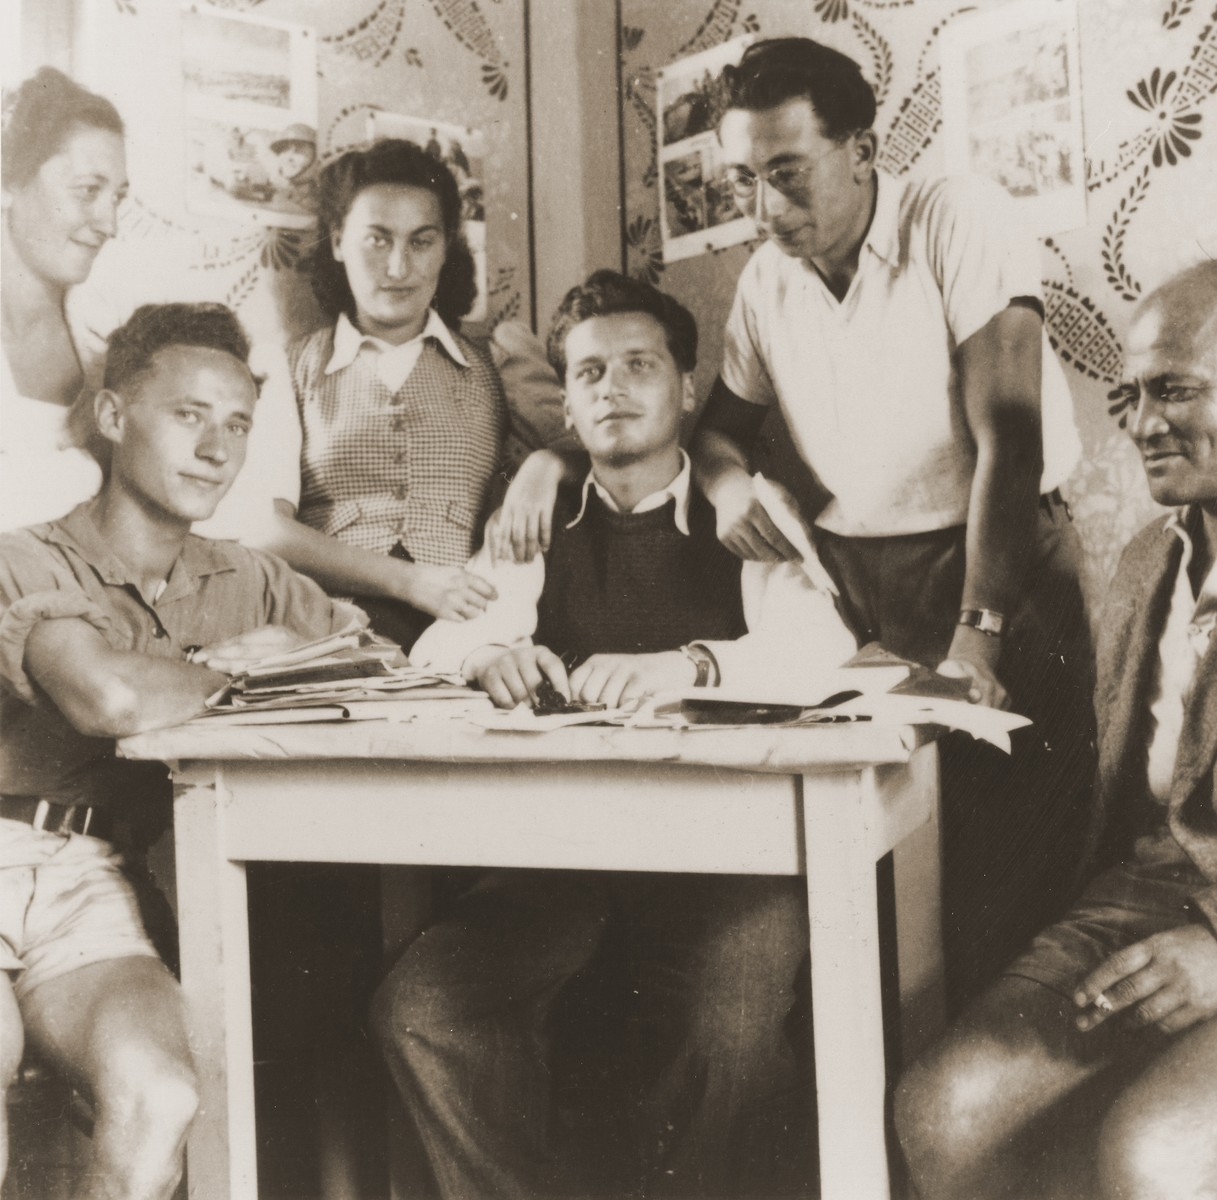 Zionist  youth from the Kladovo transport gather around a table at the movement's headquarters.  Among those pictured are: Klara Shula-Dorfmann (middle) and Jukl Adolf Dorfmann.